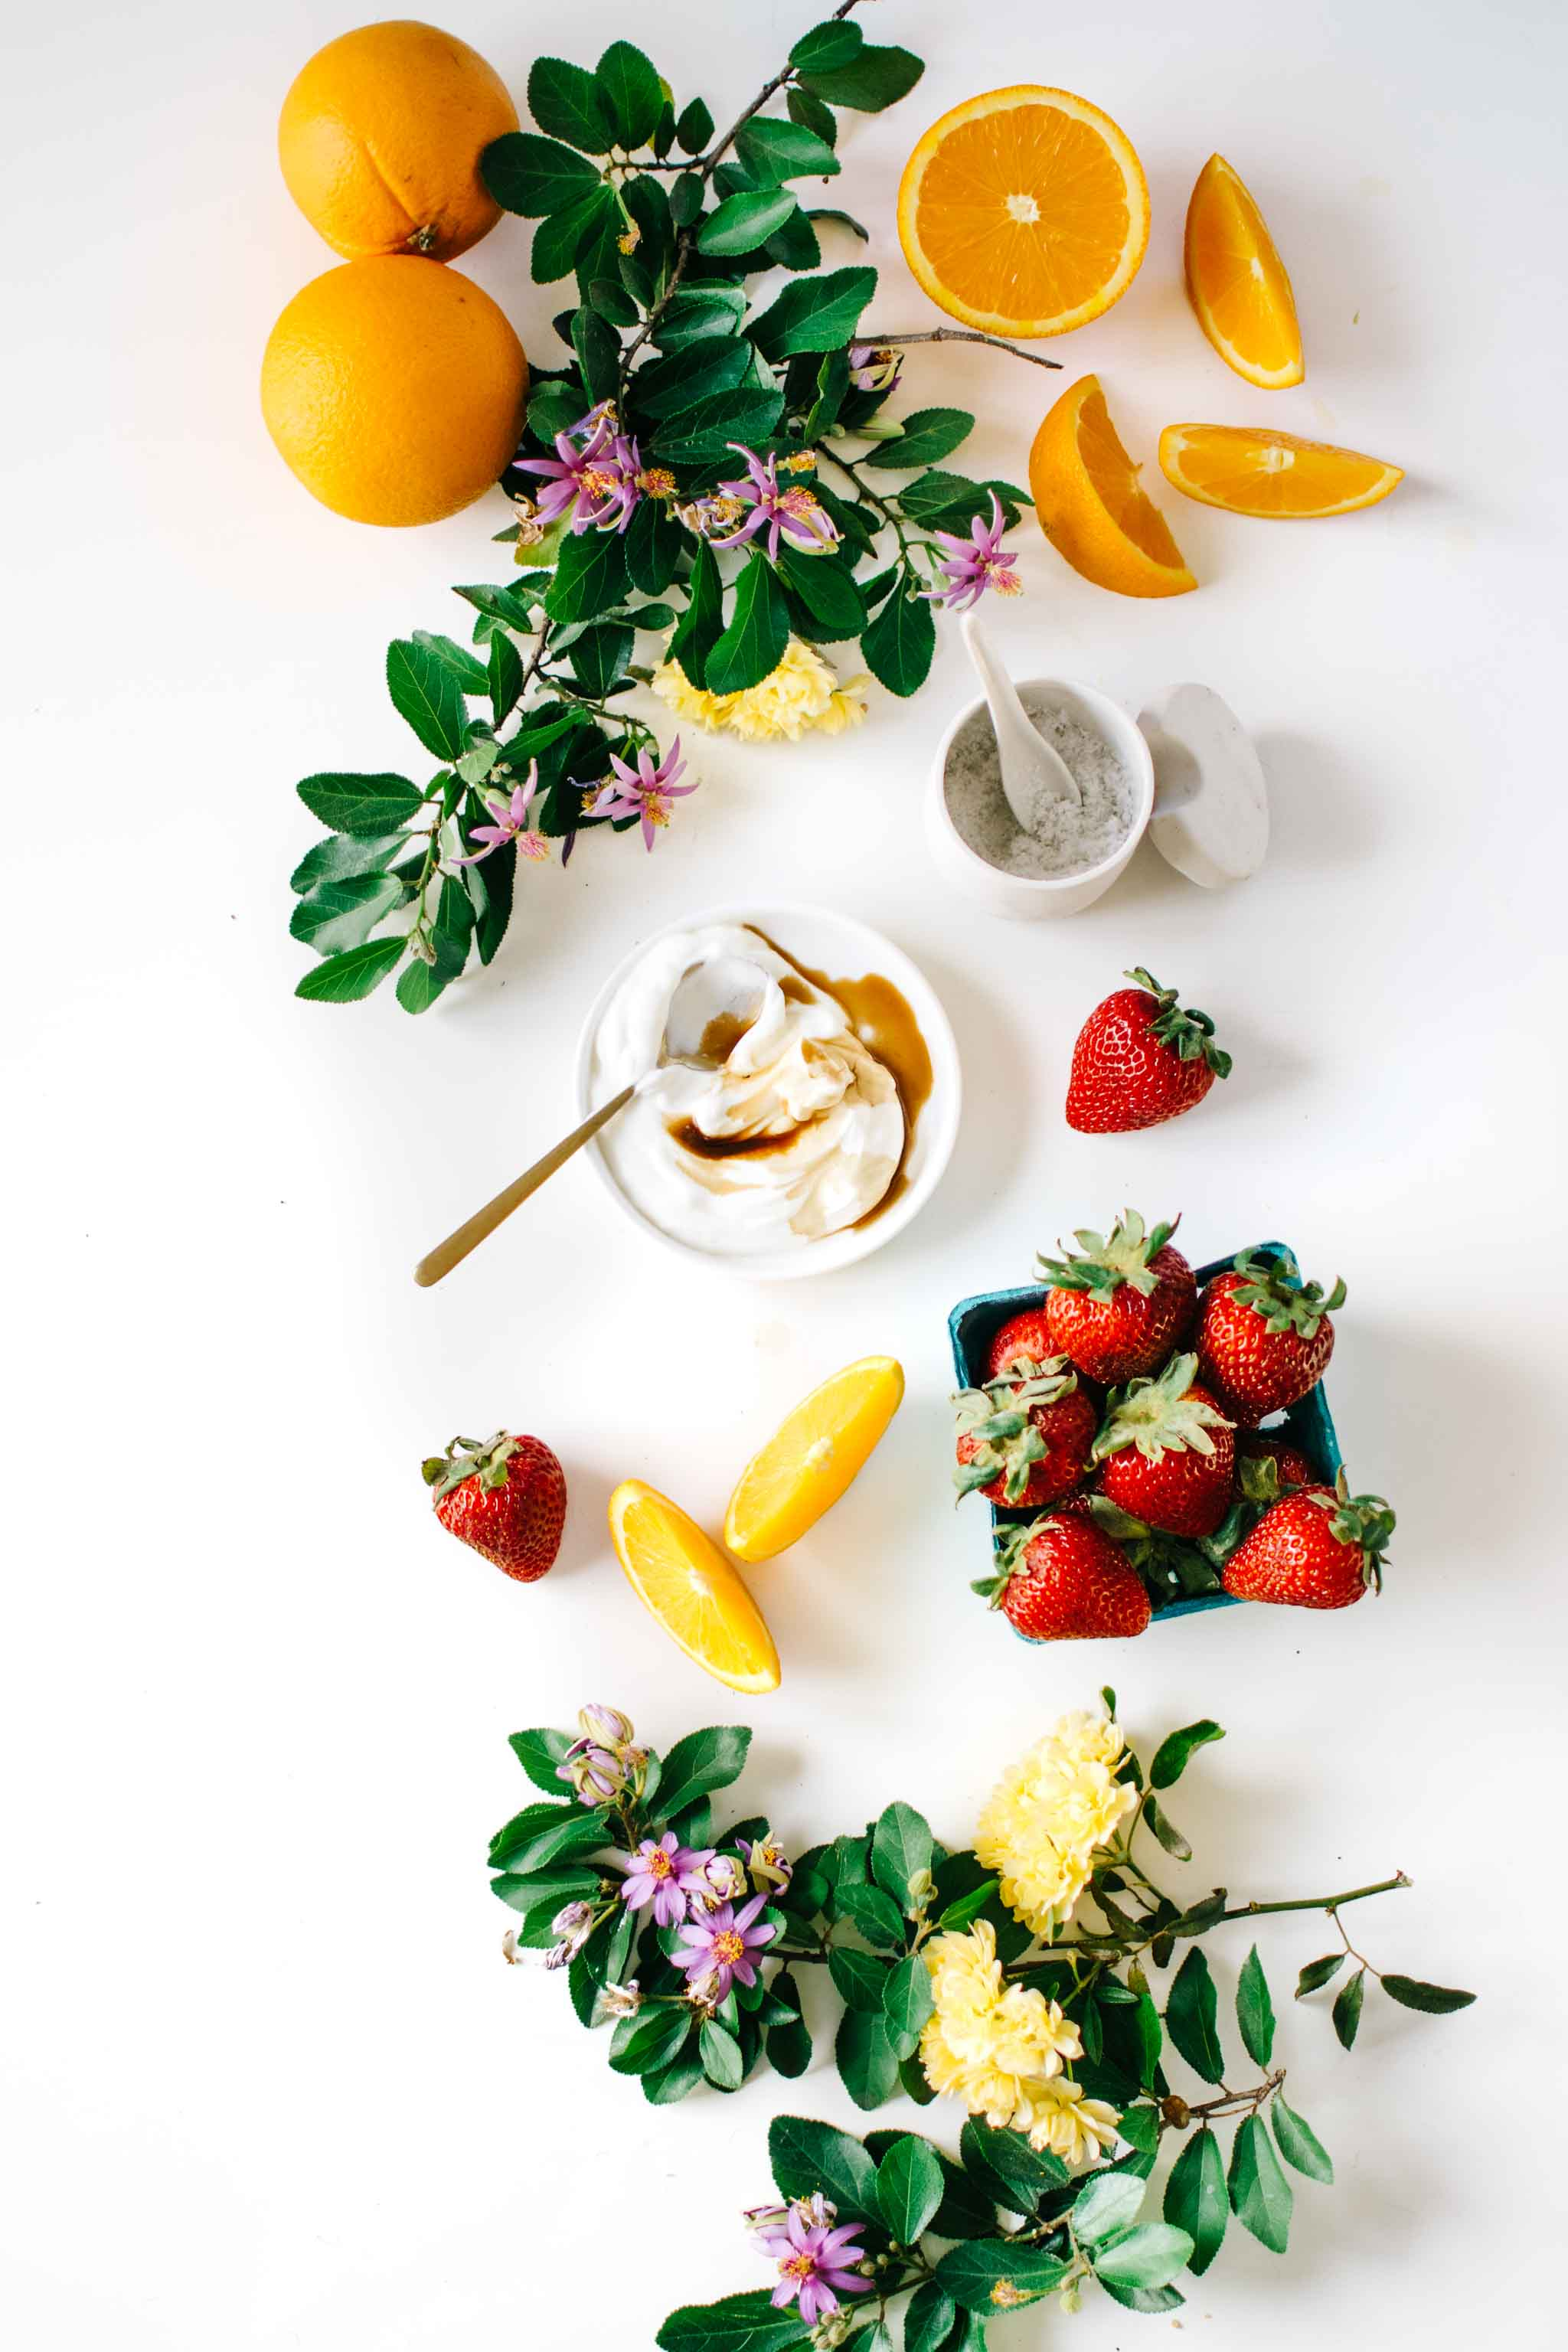 Ingredients Strawberry Orange Blossom Creamsicle Smoothie